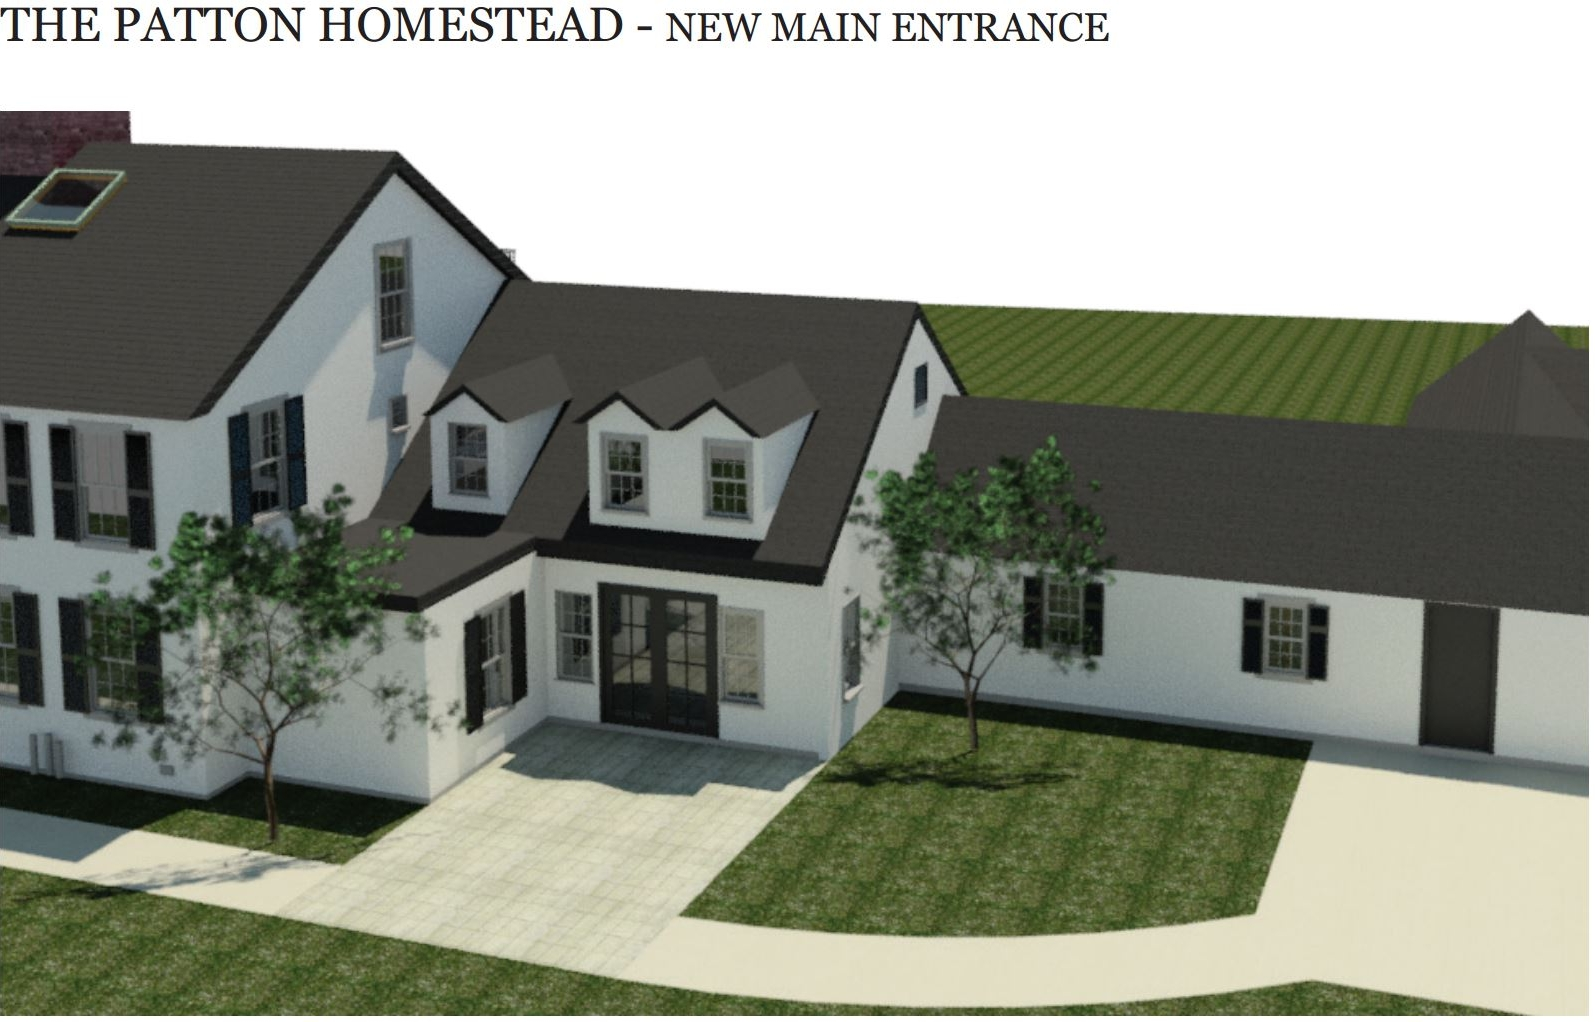 Rendering by Spencer, Sullivan & Vogt of new main entrance